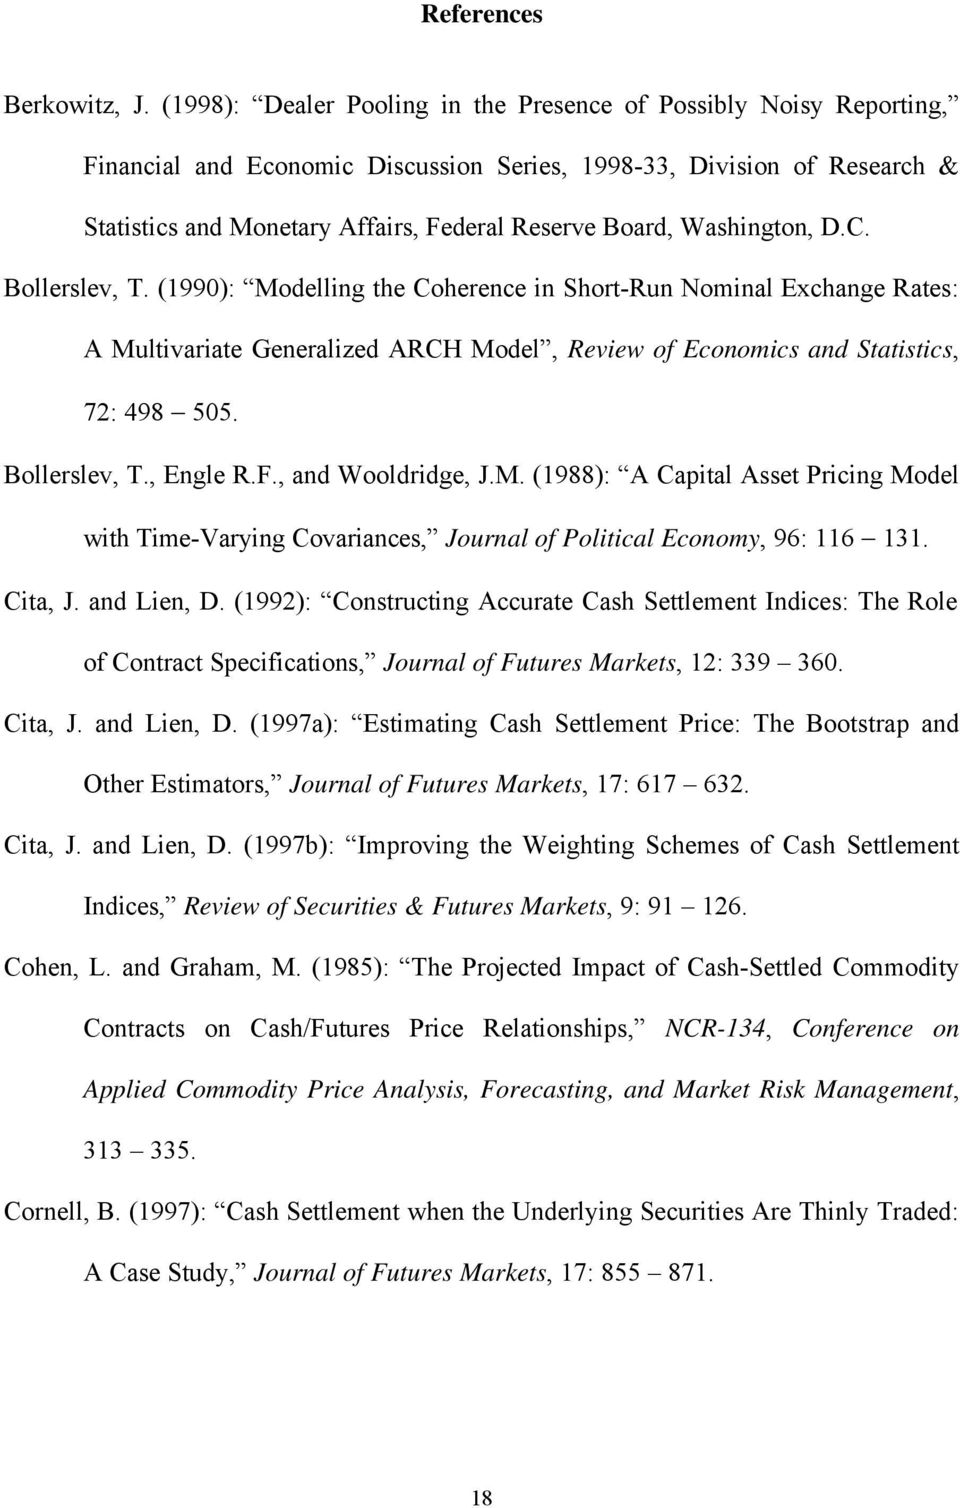 Washington, D.C. Bollerslev, T. (990): Modelling the Coherence in Short-Run Nominal Exchange Rates: A Multivariate Generalized ARCH Model, Review of Economics and Statistics, 72: 498 505.